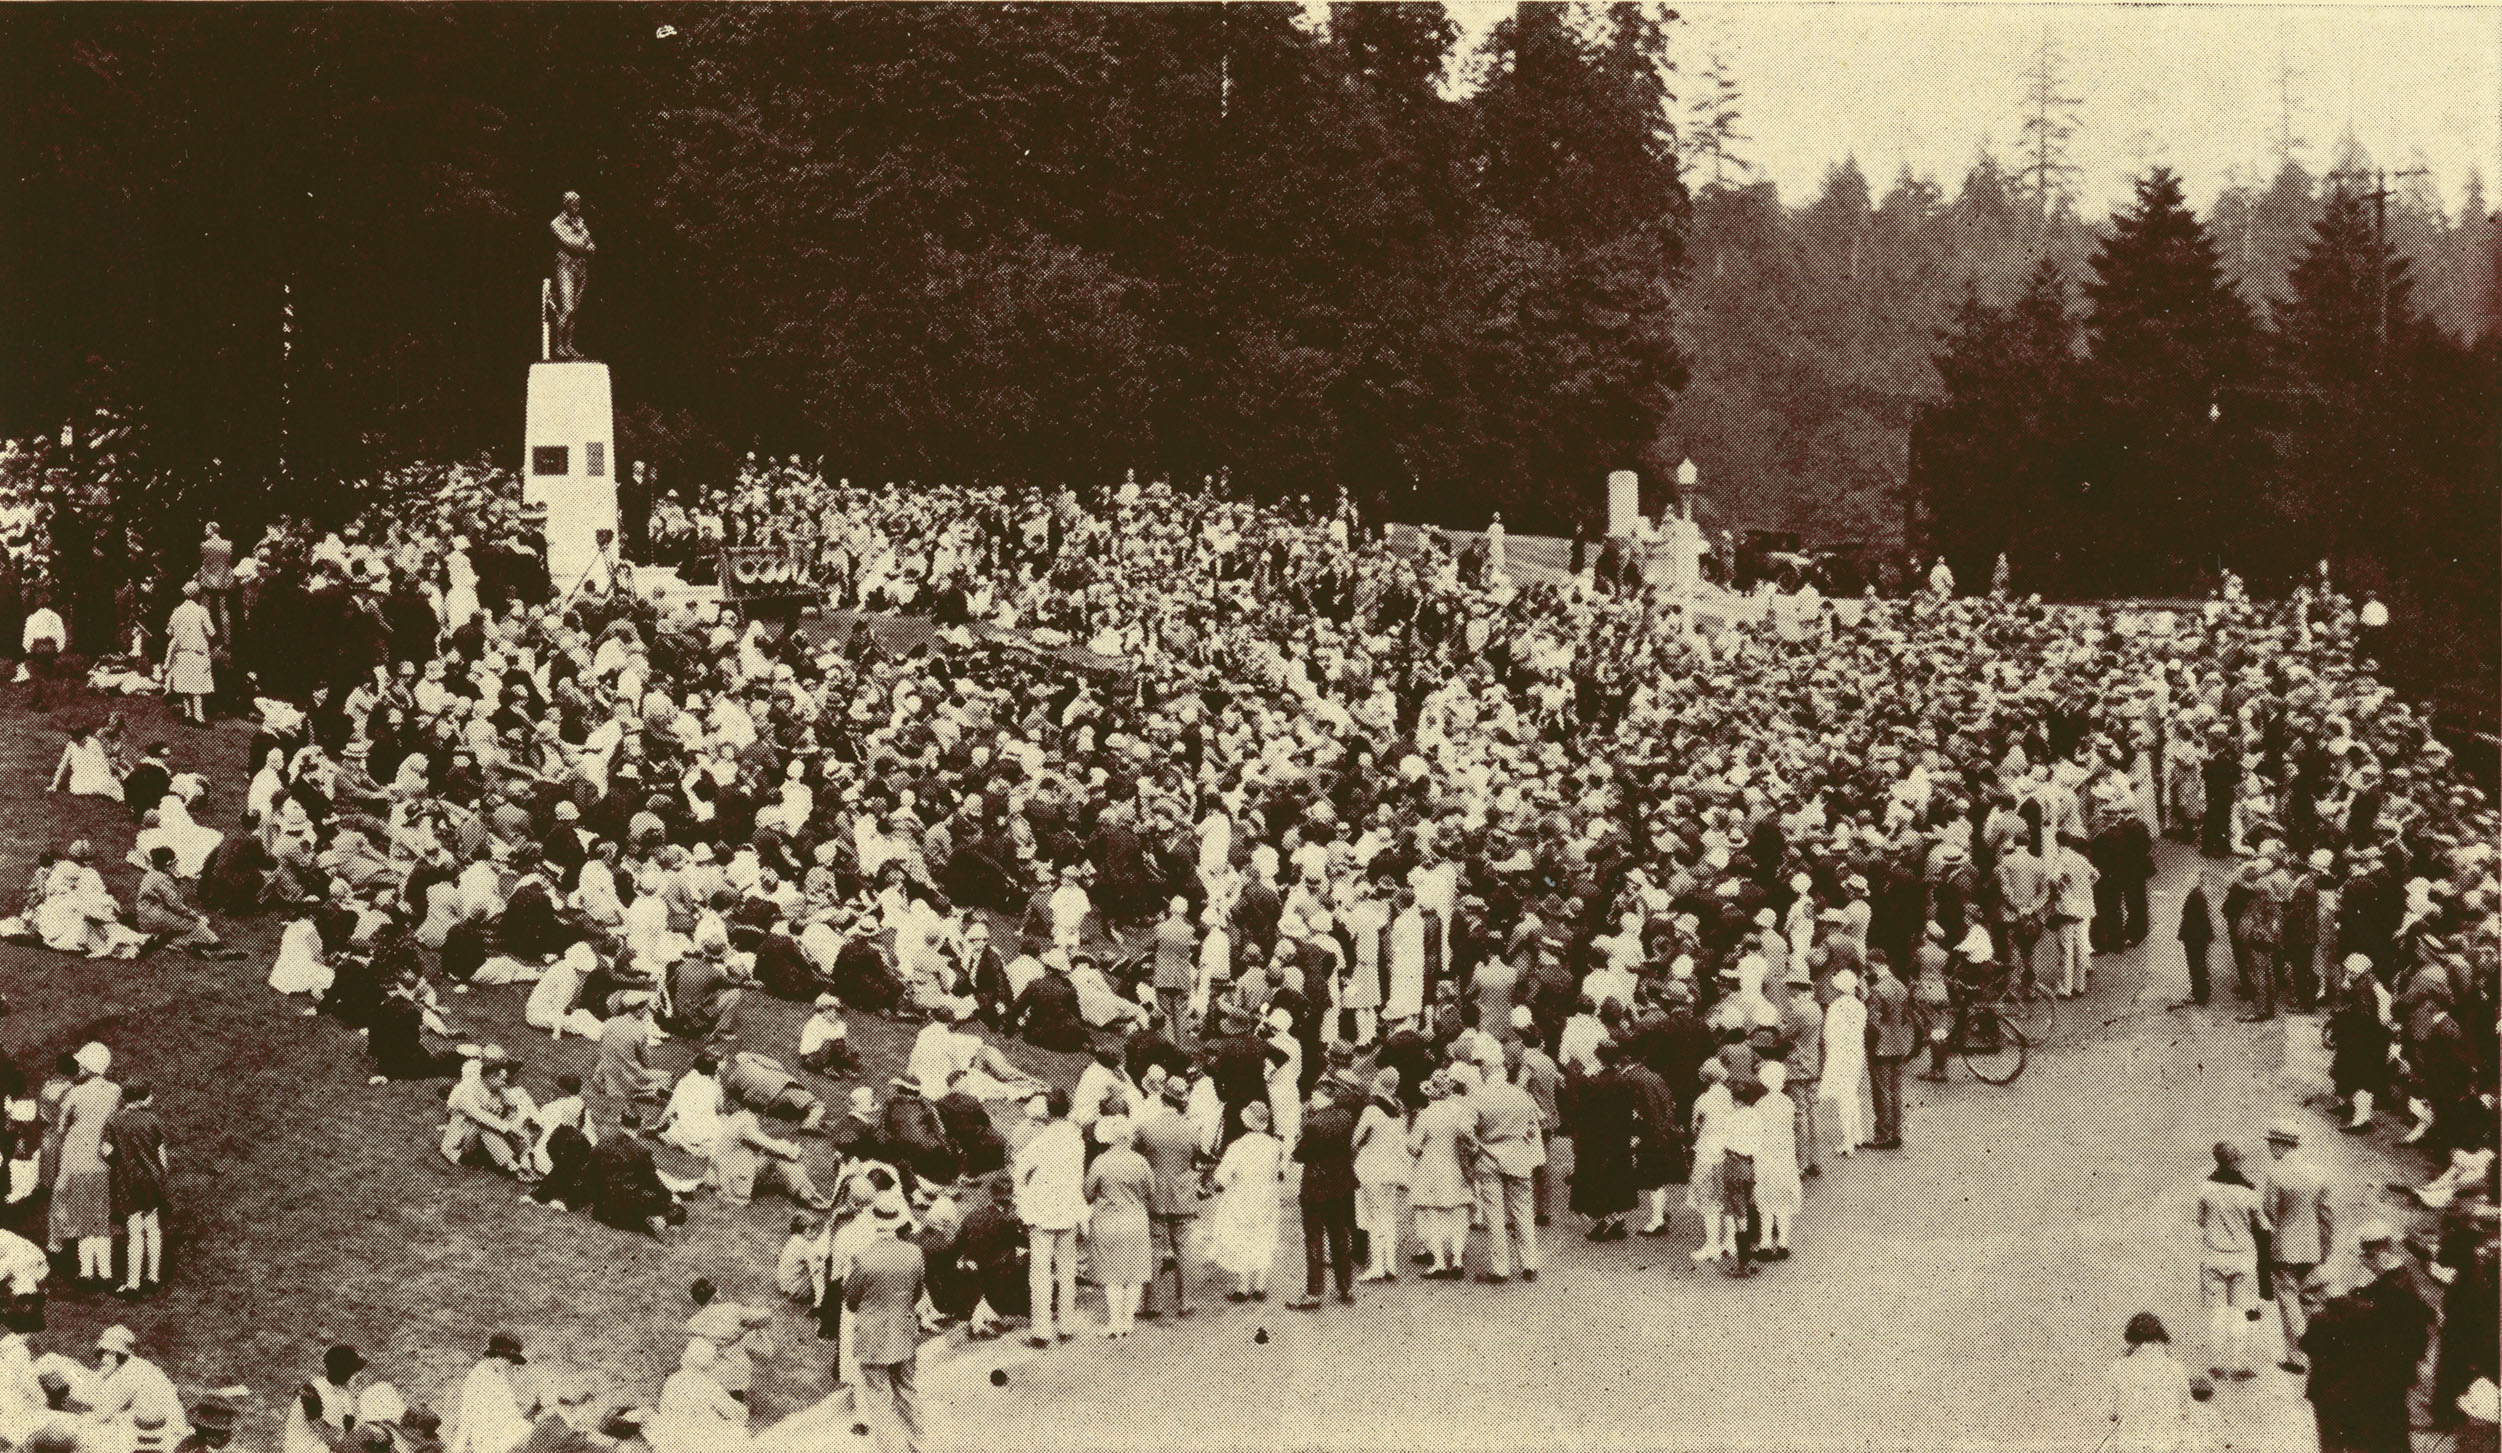 "A portion of the crowd at the unveiling, August 25, 1928. Page 23 of ""Vancouver's Tribute to Burns"", 1928, reference code PR 4331 R24."